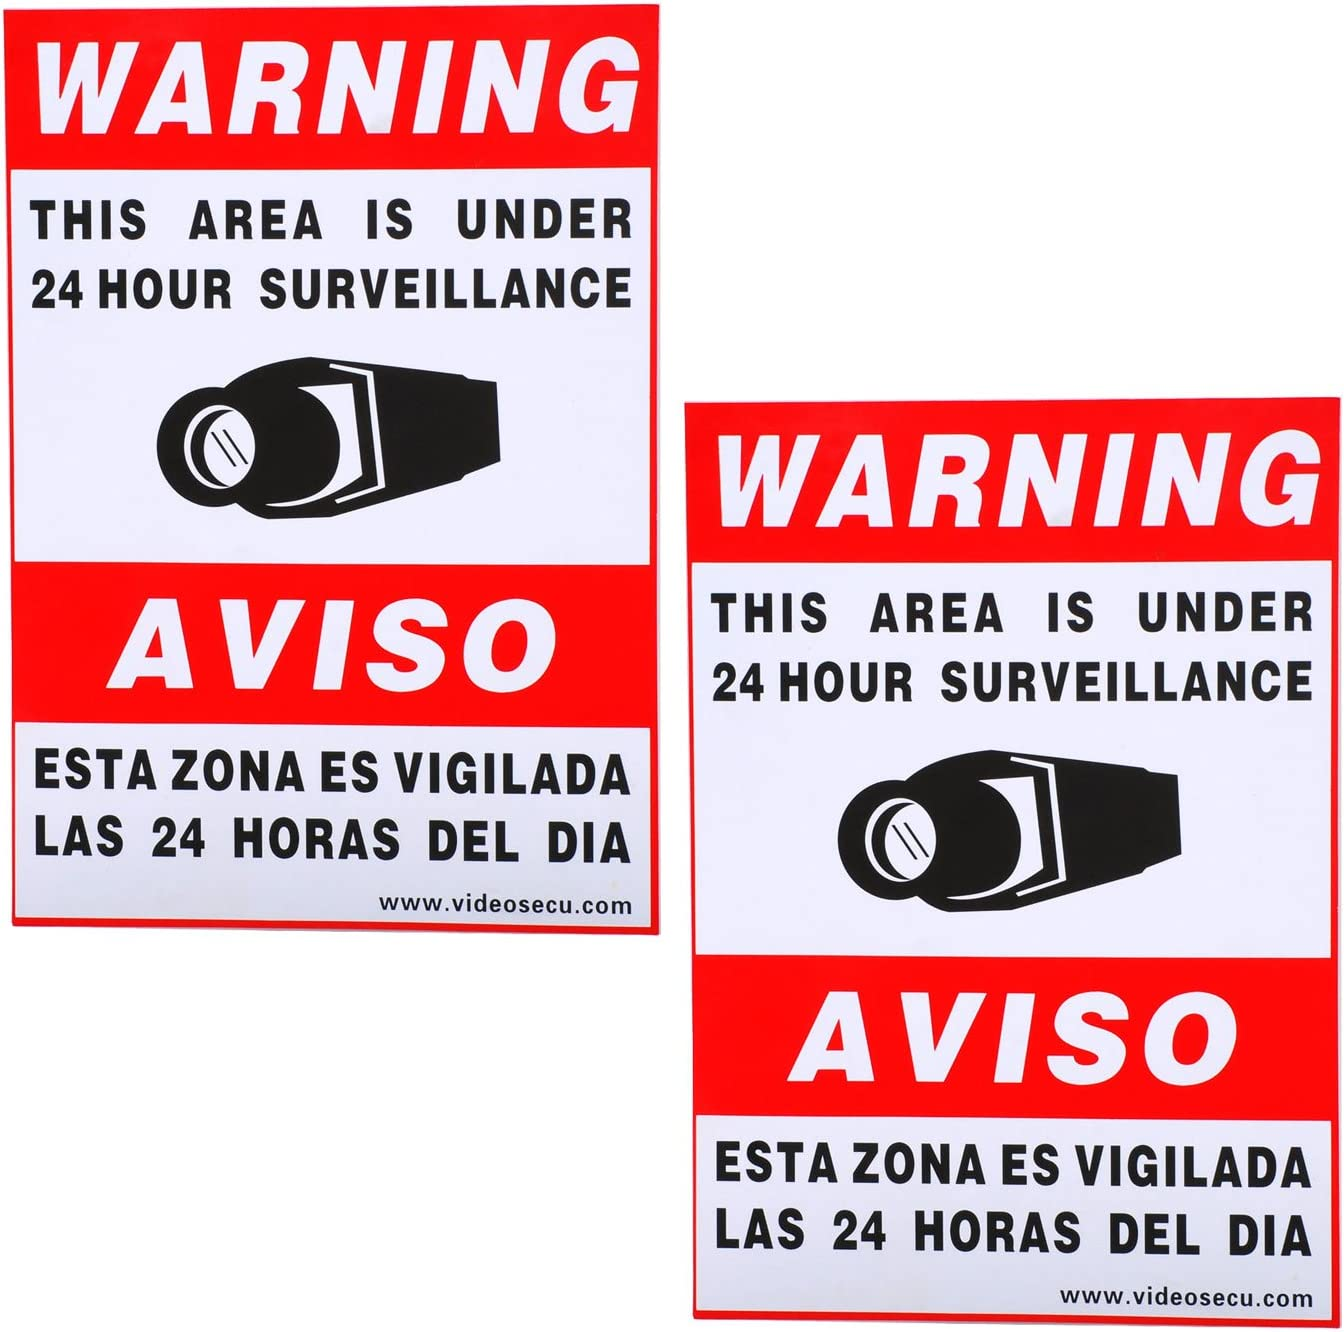 VideoSecu 2 Pack of 11.5x8.3 Security Warning Decal Weatherproof Vinyl Window Alarm Sign Sticker for Home CCTV DVR CCD Video Surveillance Camera System WO9